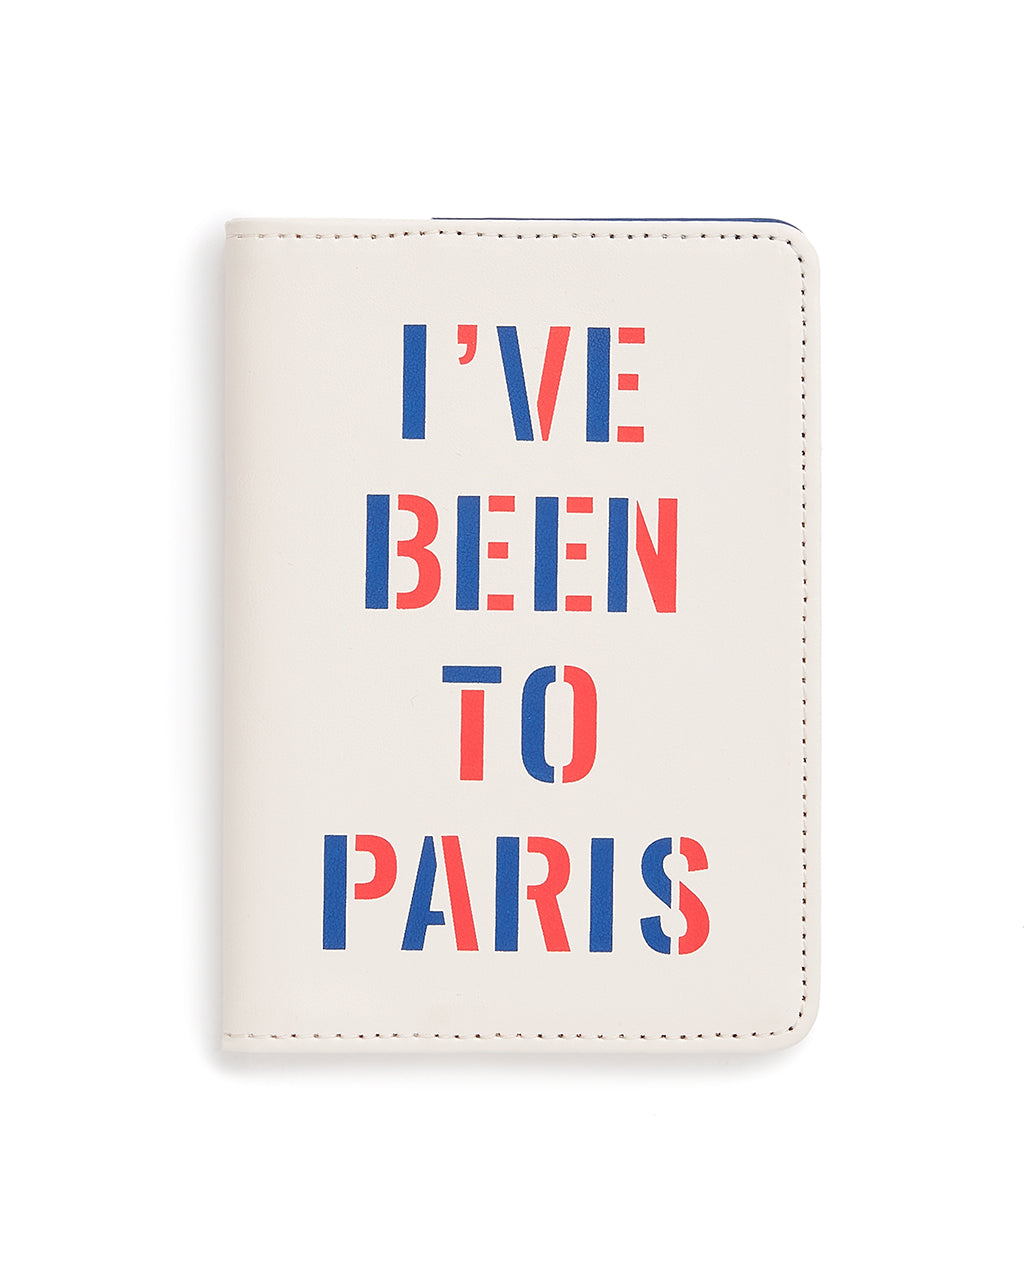 This Getaway Passport Holder comes in white, with 'I've Been To Paris' printed in red and blue on the front.